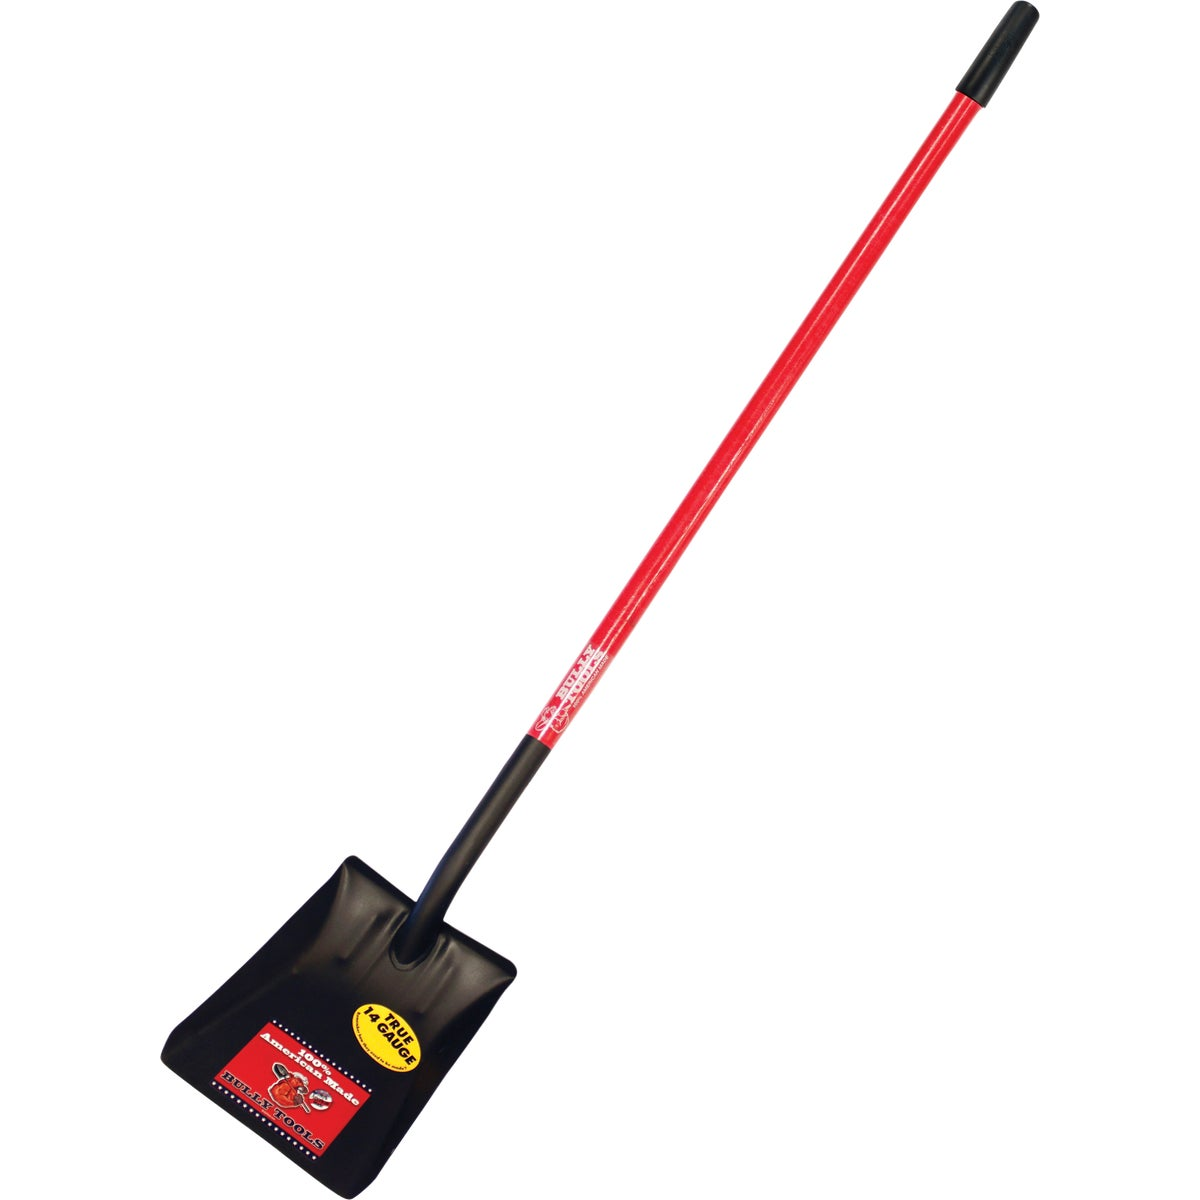 F/G LHSP SHOVEL - 82525 by Bully Tools